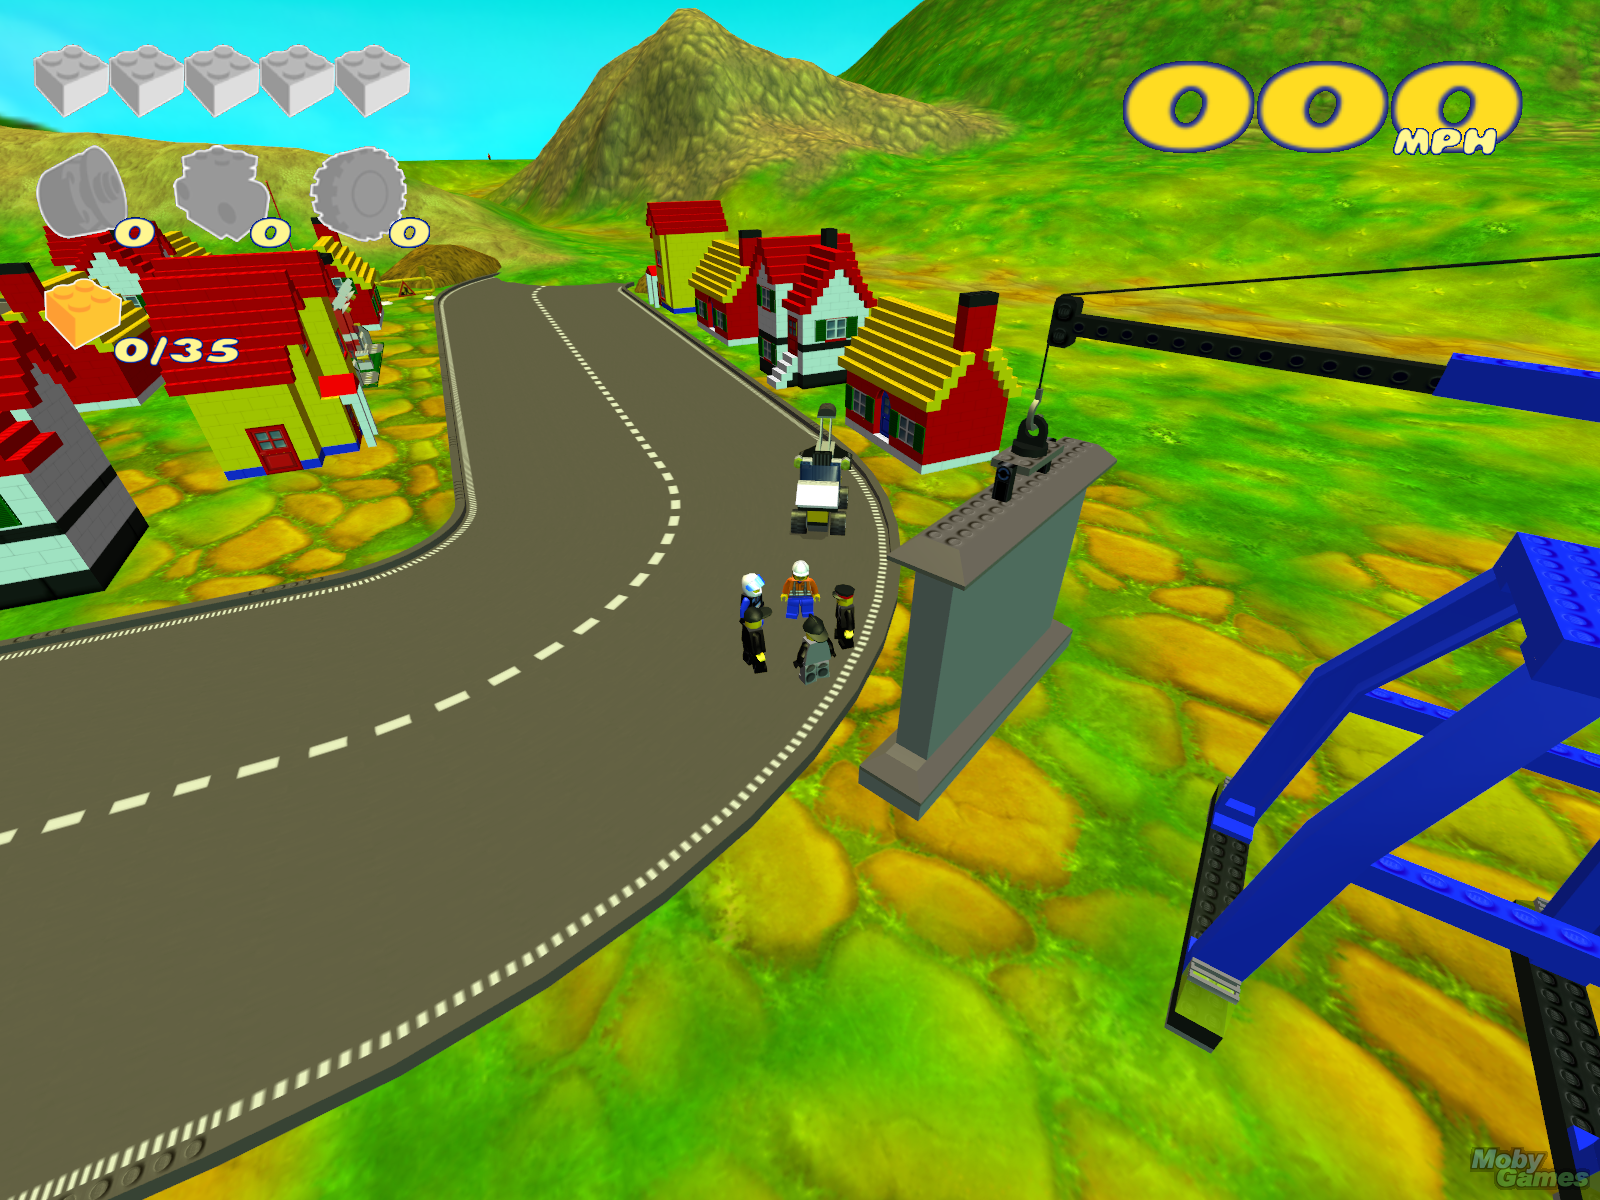 Lego Racers 2 Pc Game Free Download Full Version ...